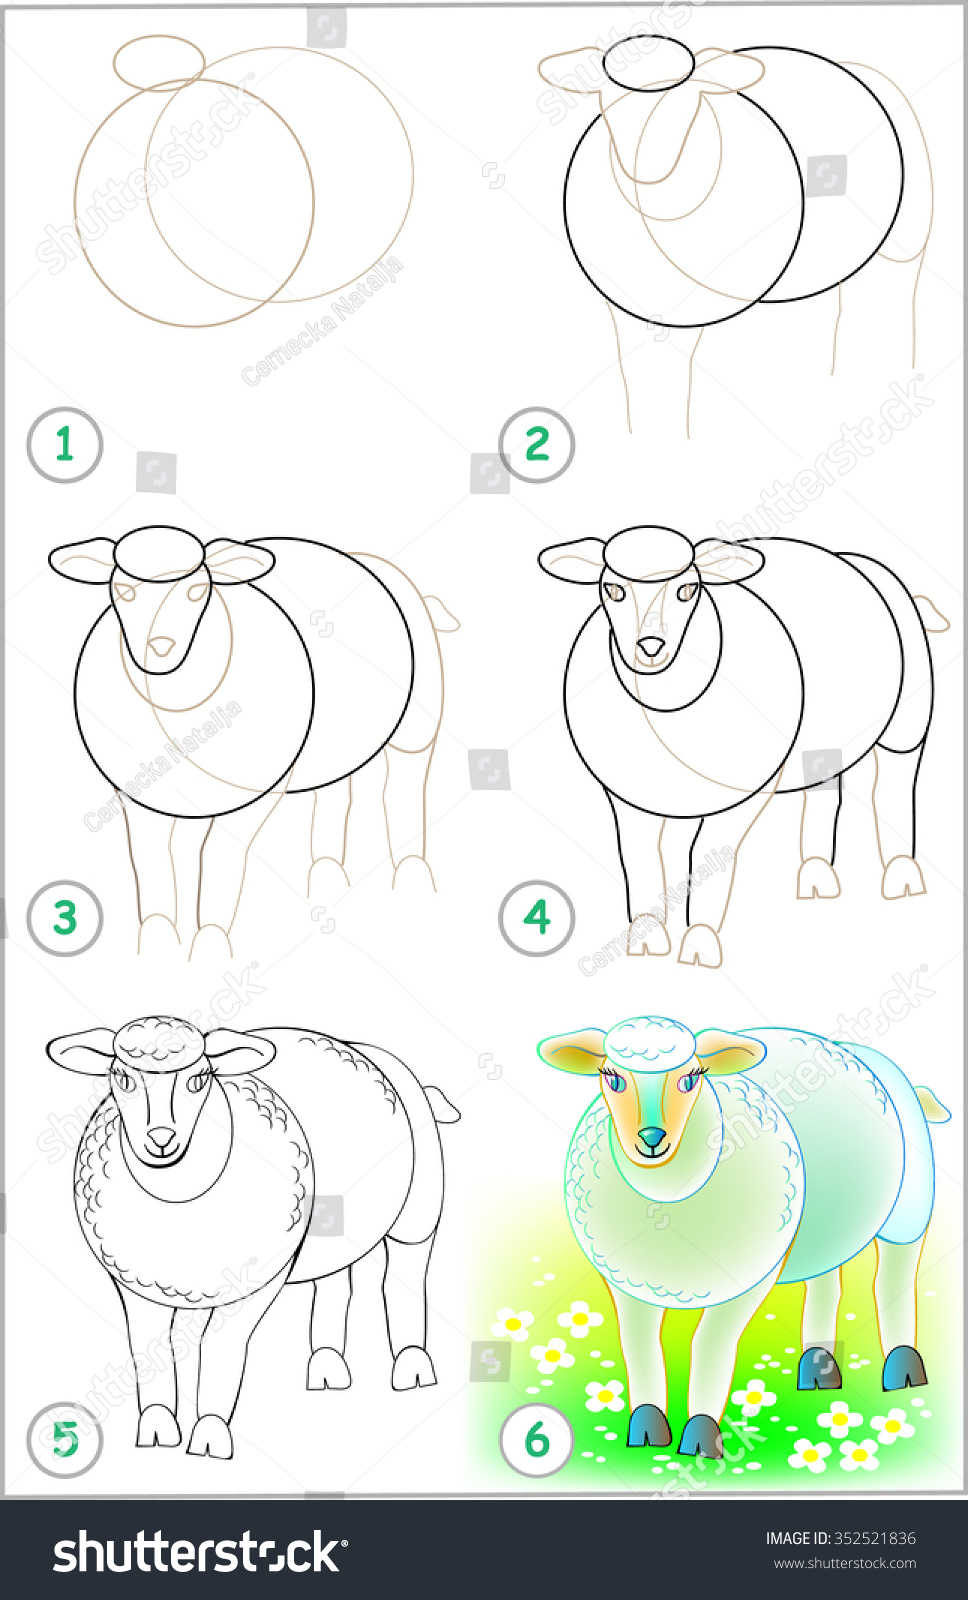 how to draw sheep for kid